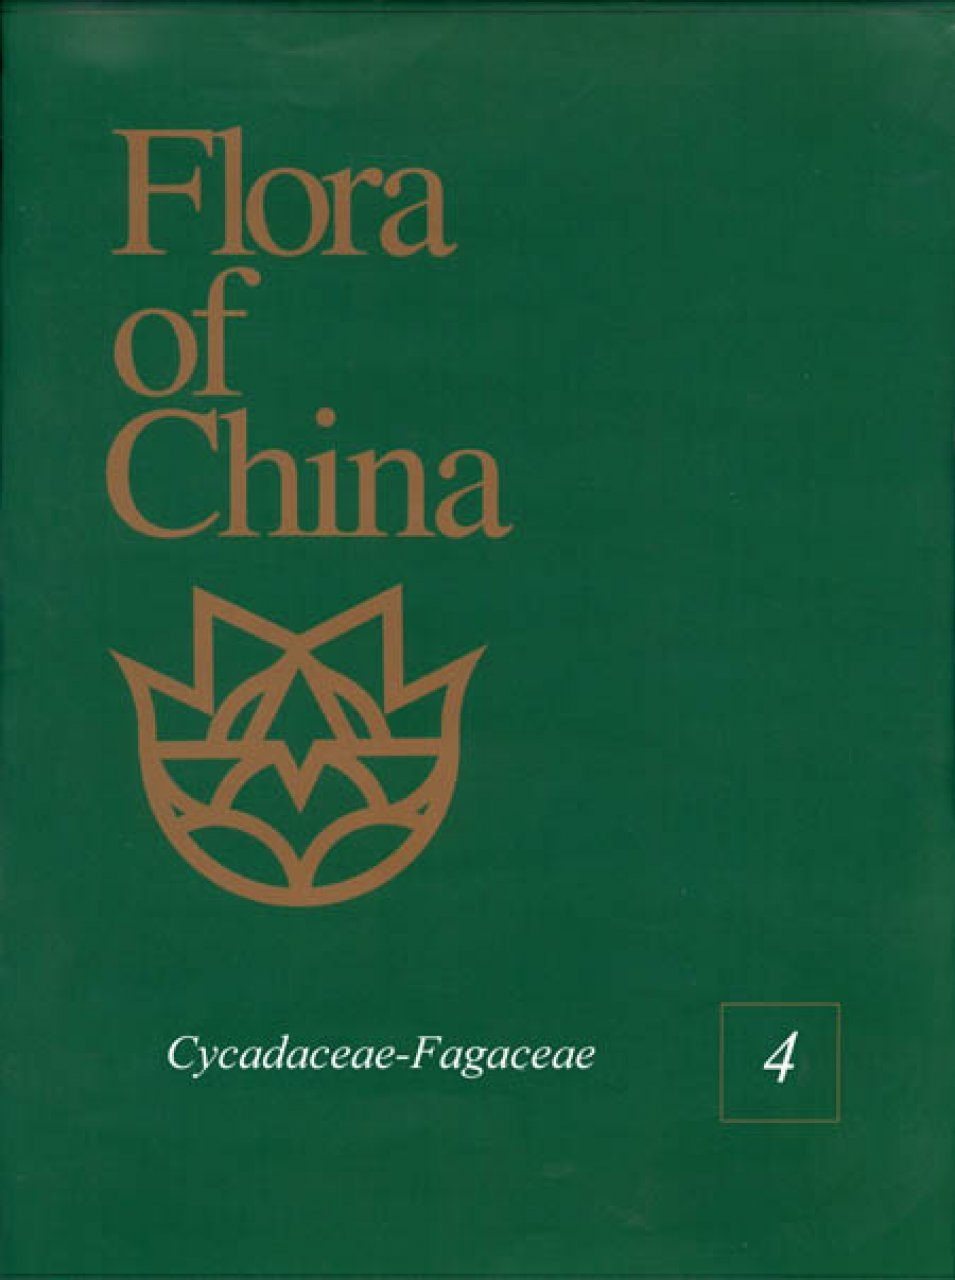 Flora of China, Volume 4: Cycadaceae-Fagaceae